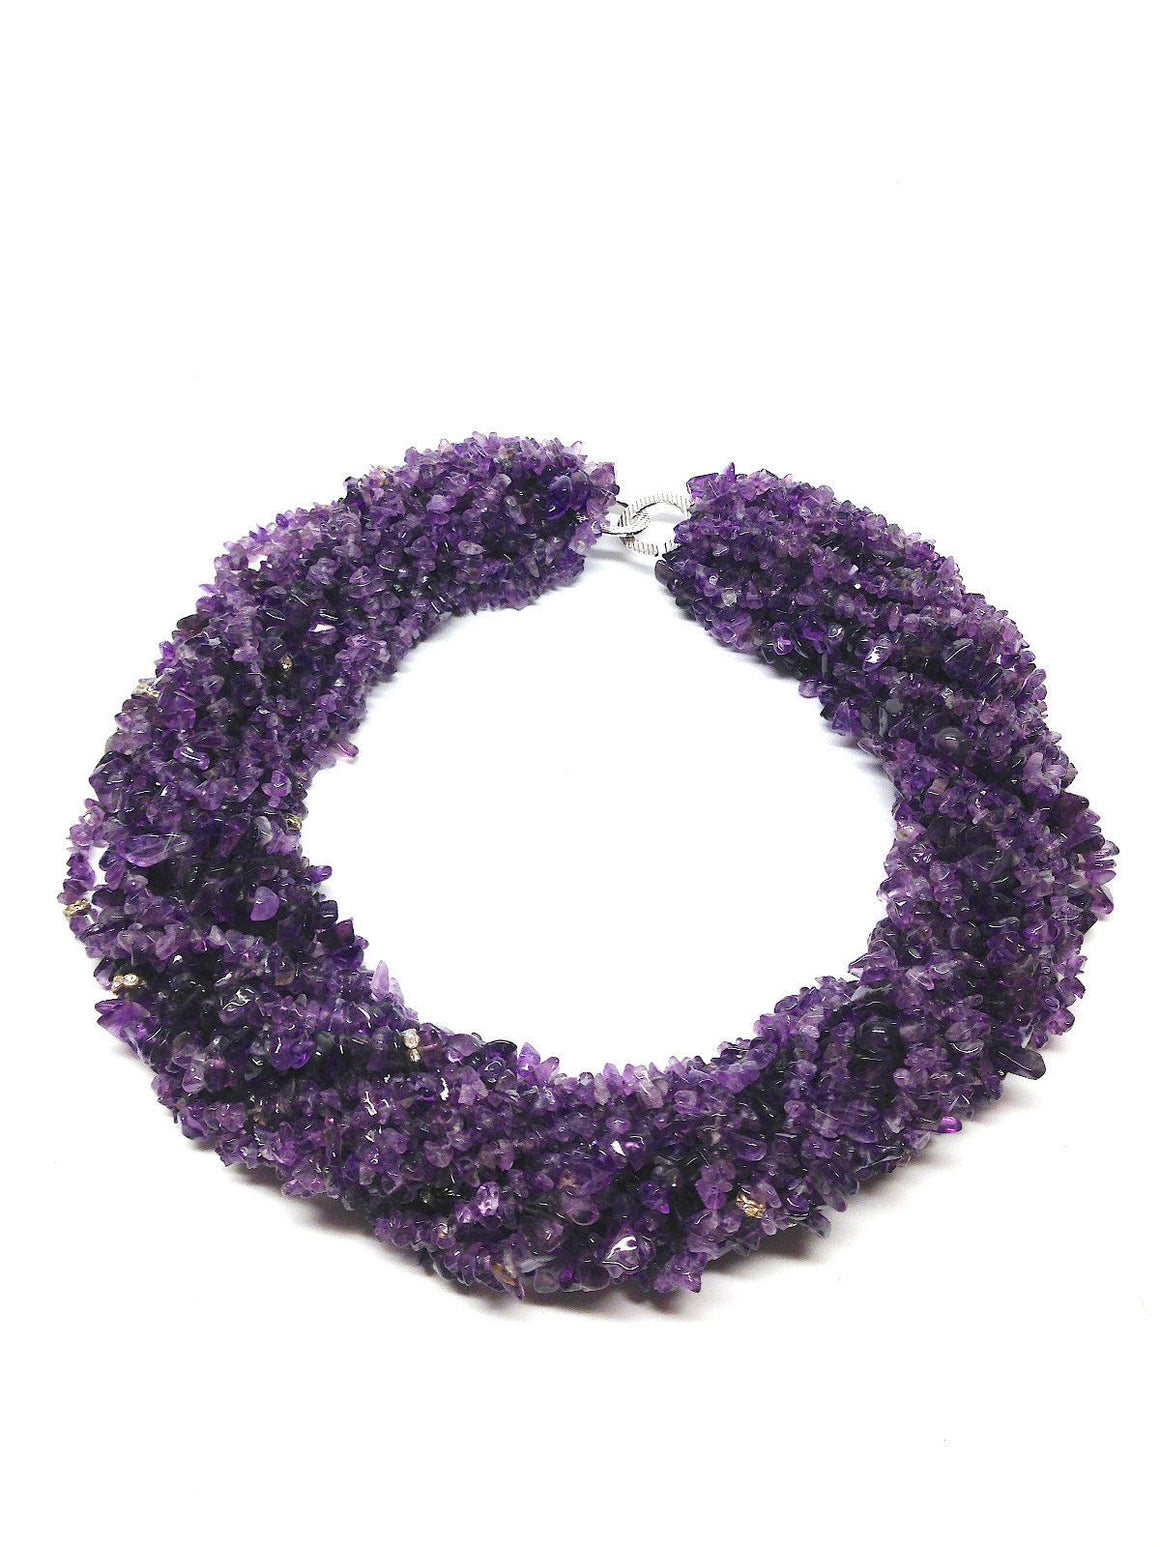 bisbiz.com DESIGNER Thousand AMETHYST Chips & Rhinestone Rondels  Statement Necklace/Torcade - Bis Luxury Resale